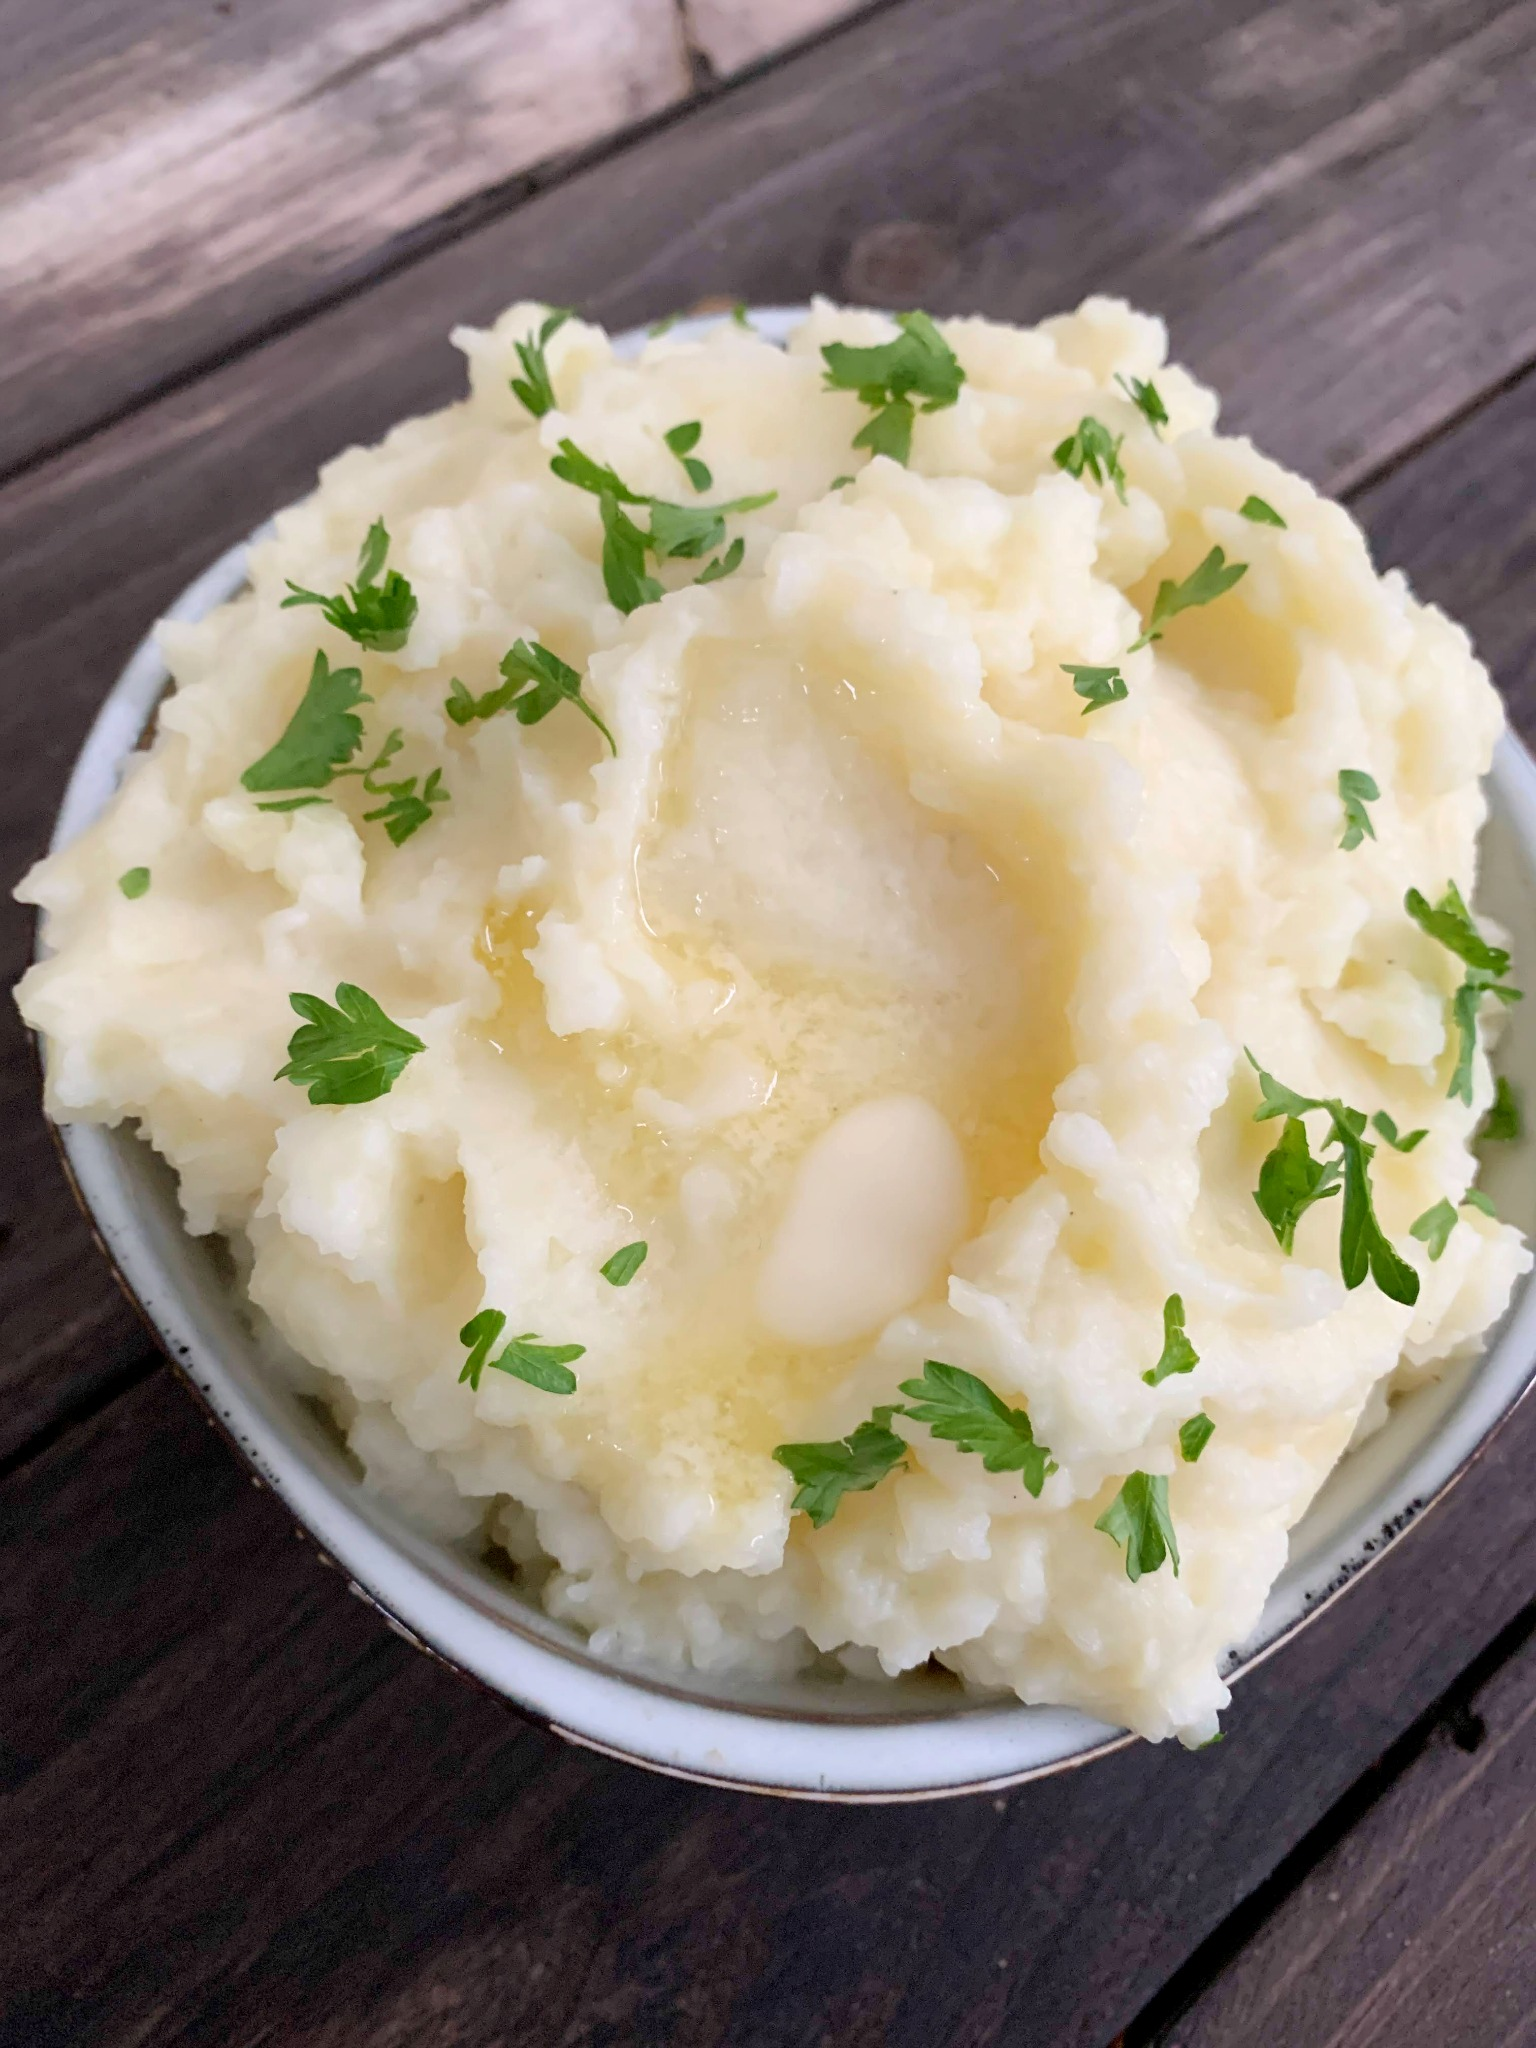 mashed potatoes in a bowl with melted butter and chopped parsley on top